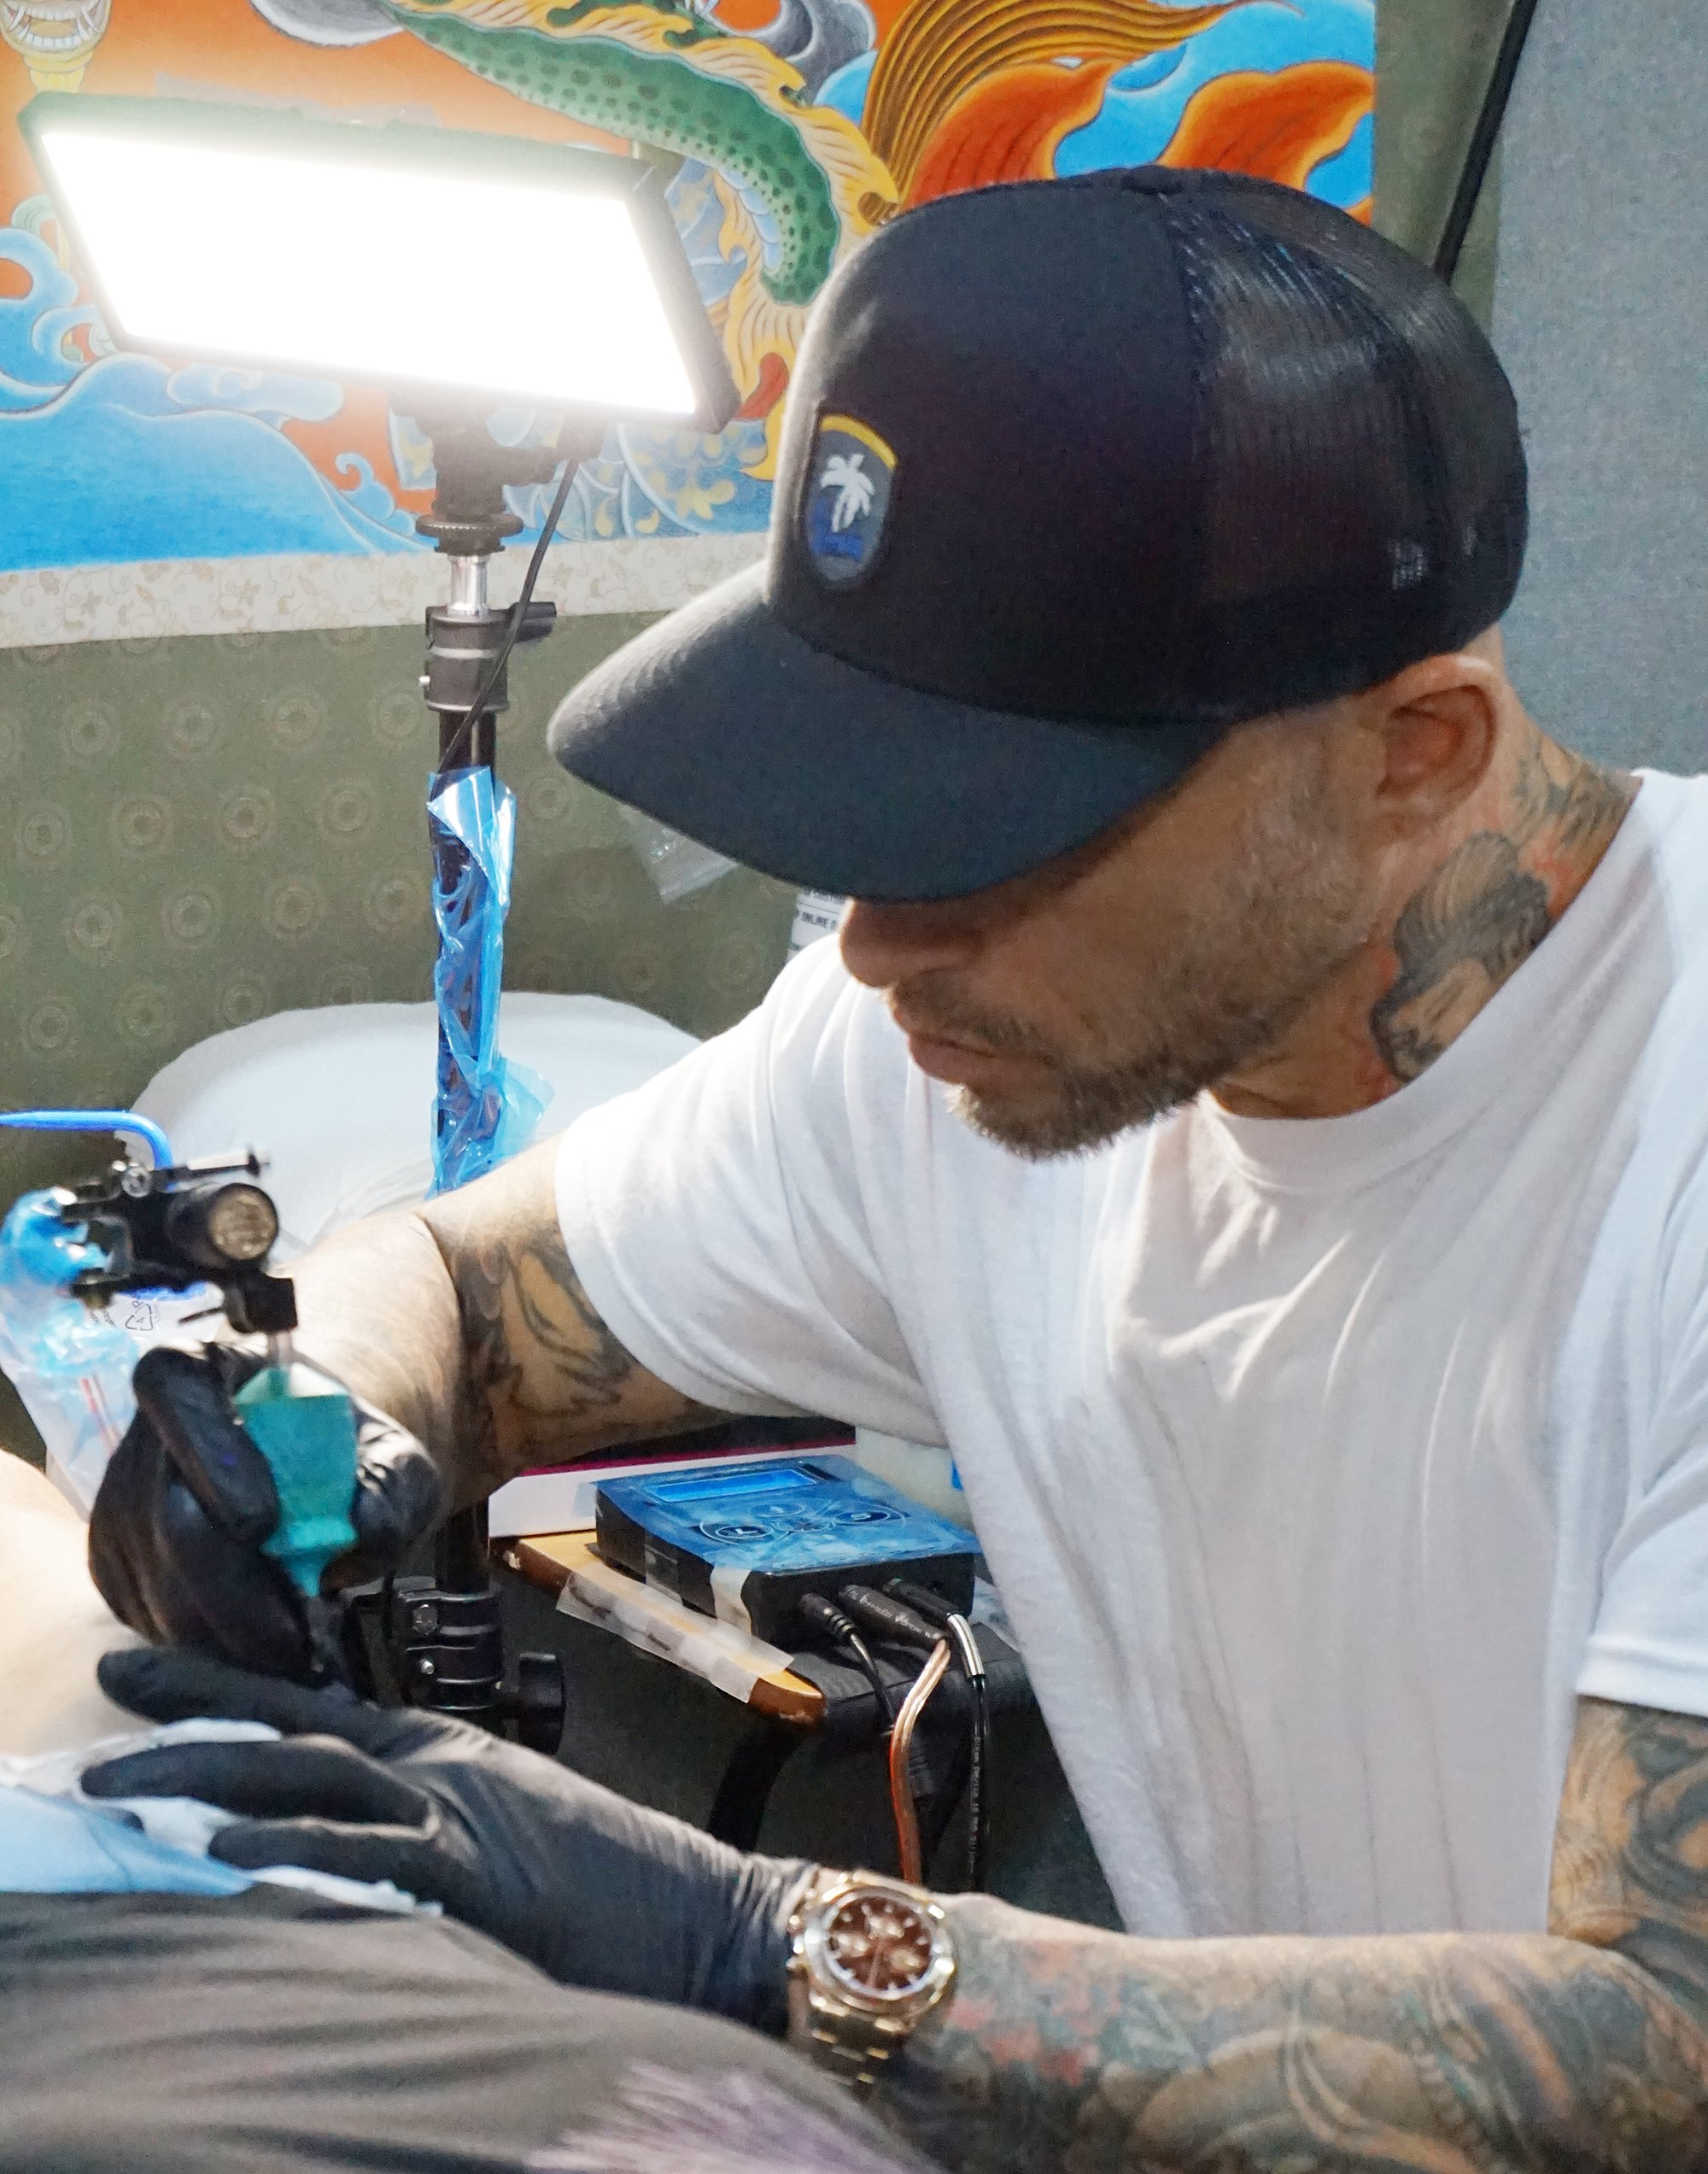 Ami James tattooing at london tattoo convention